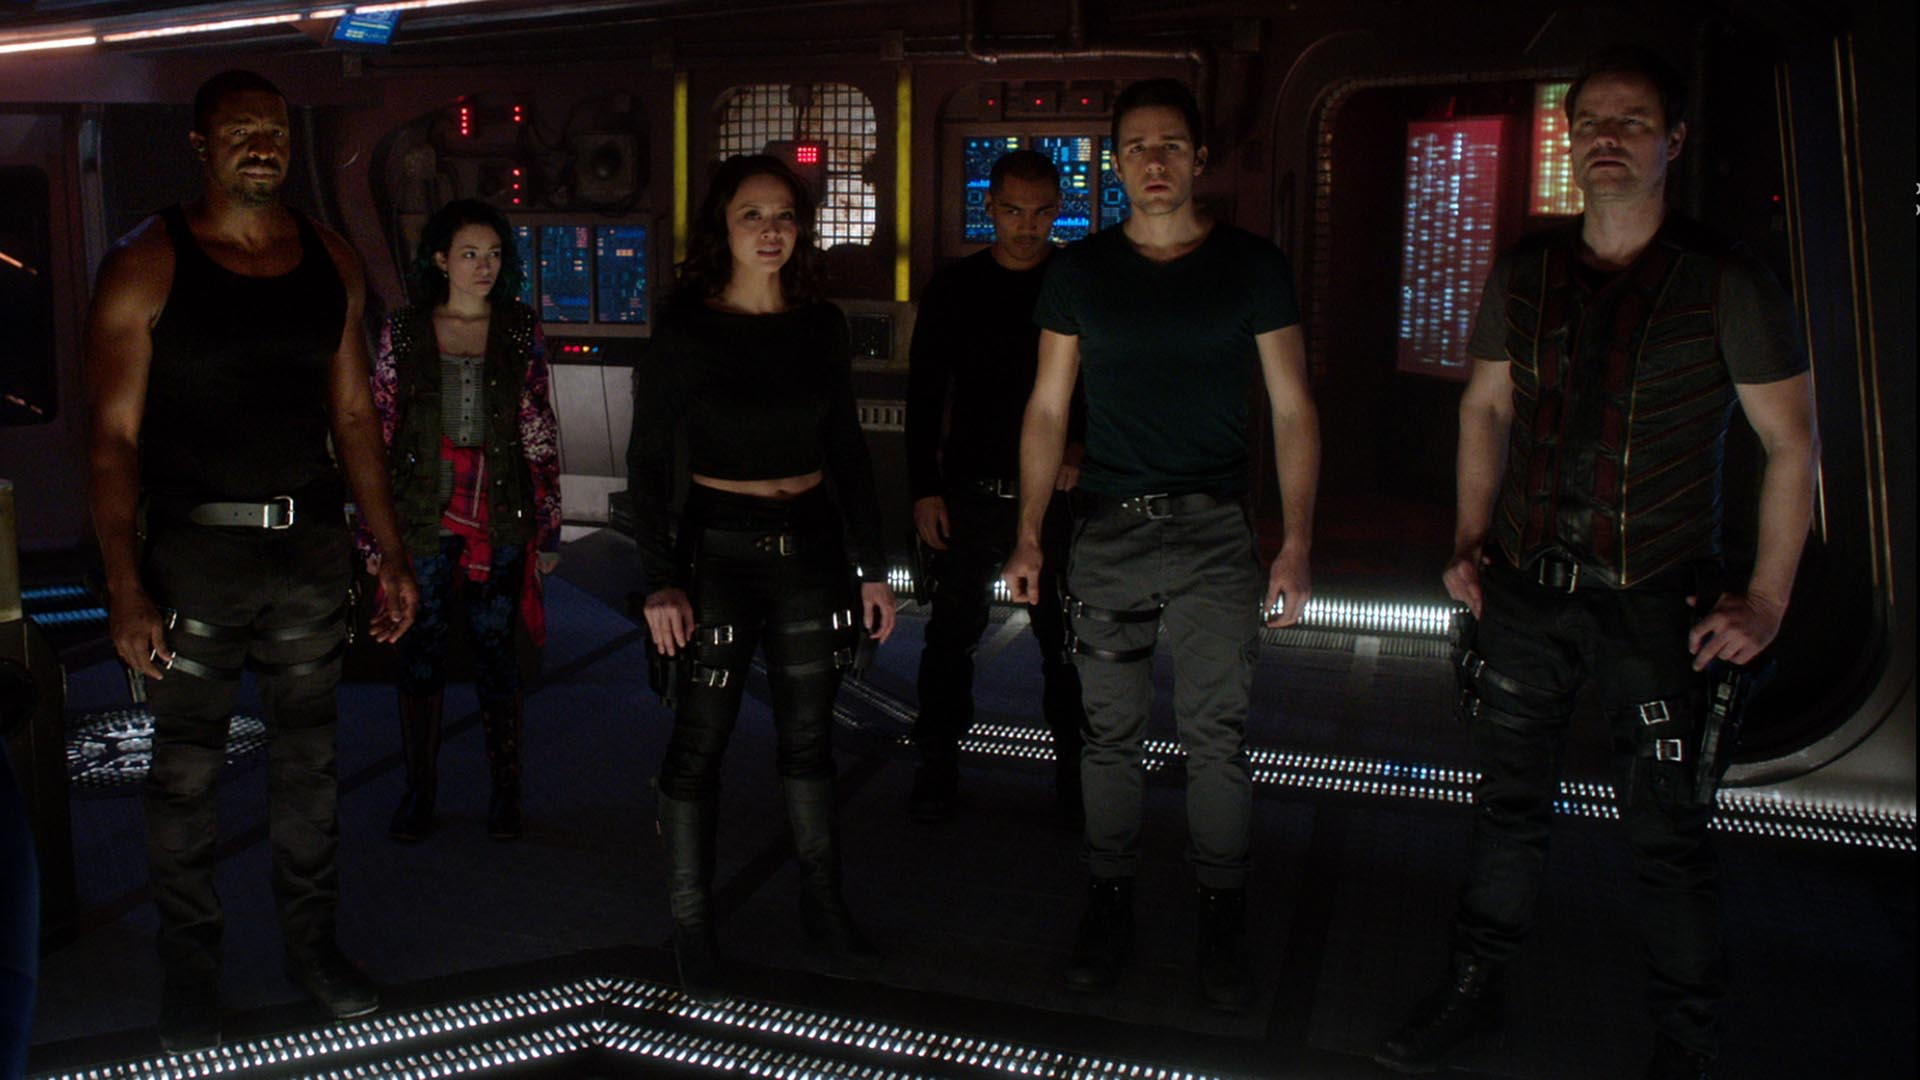 darkmatter_six_what_we_know_01.jpg